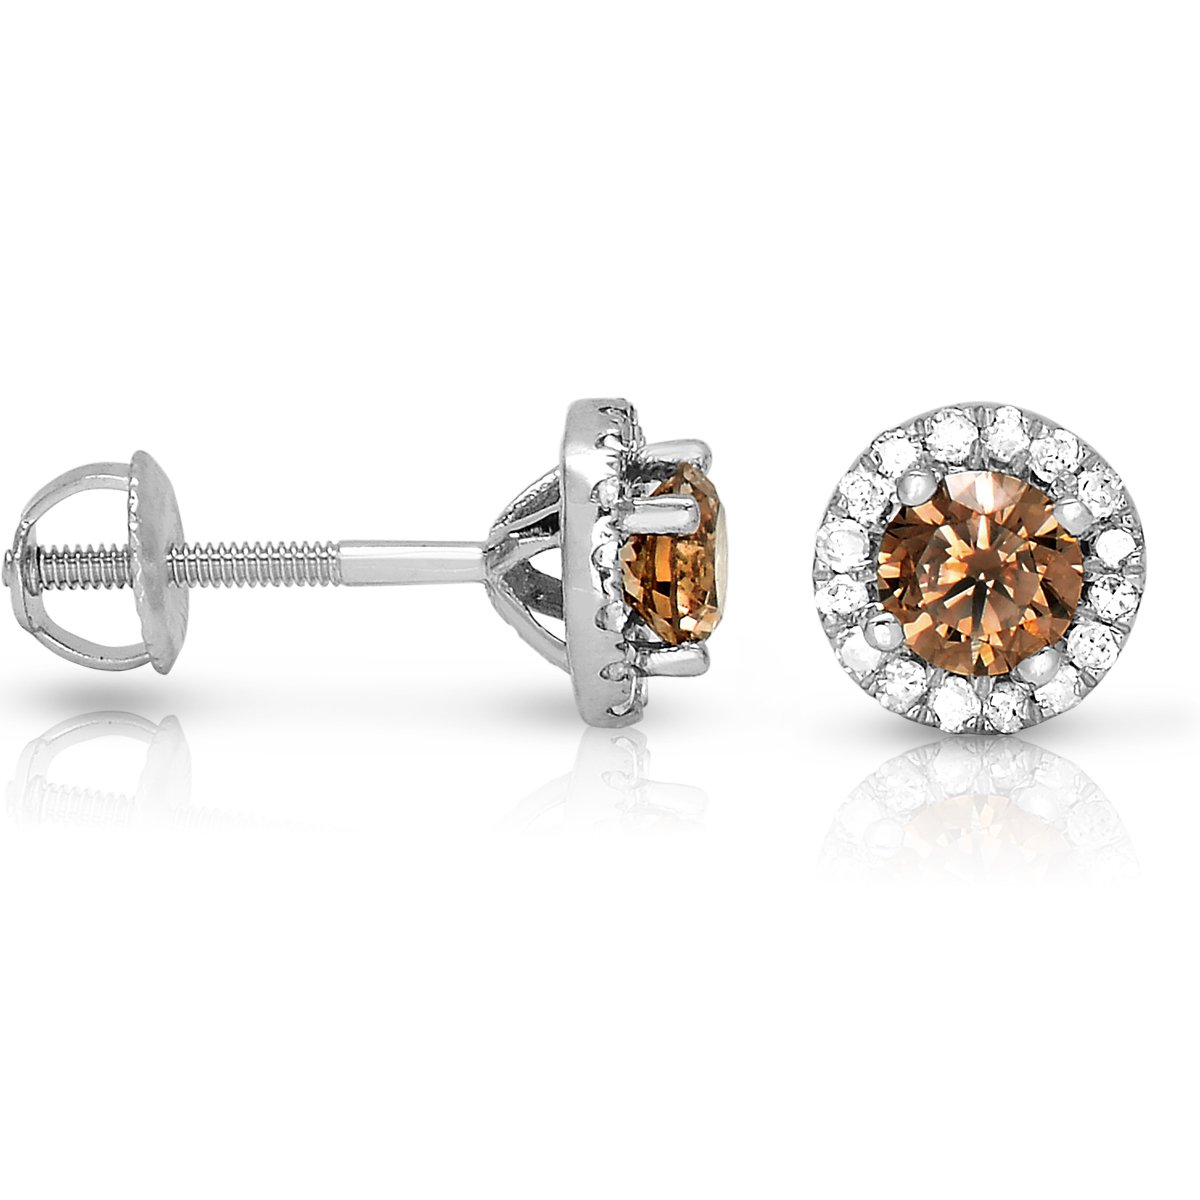 1.50 ct Chocolate Brown Round Diamond Halo Cluster Stud Earrings 14k White Gold (E1295-150WBR)